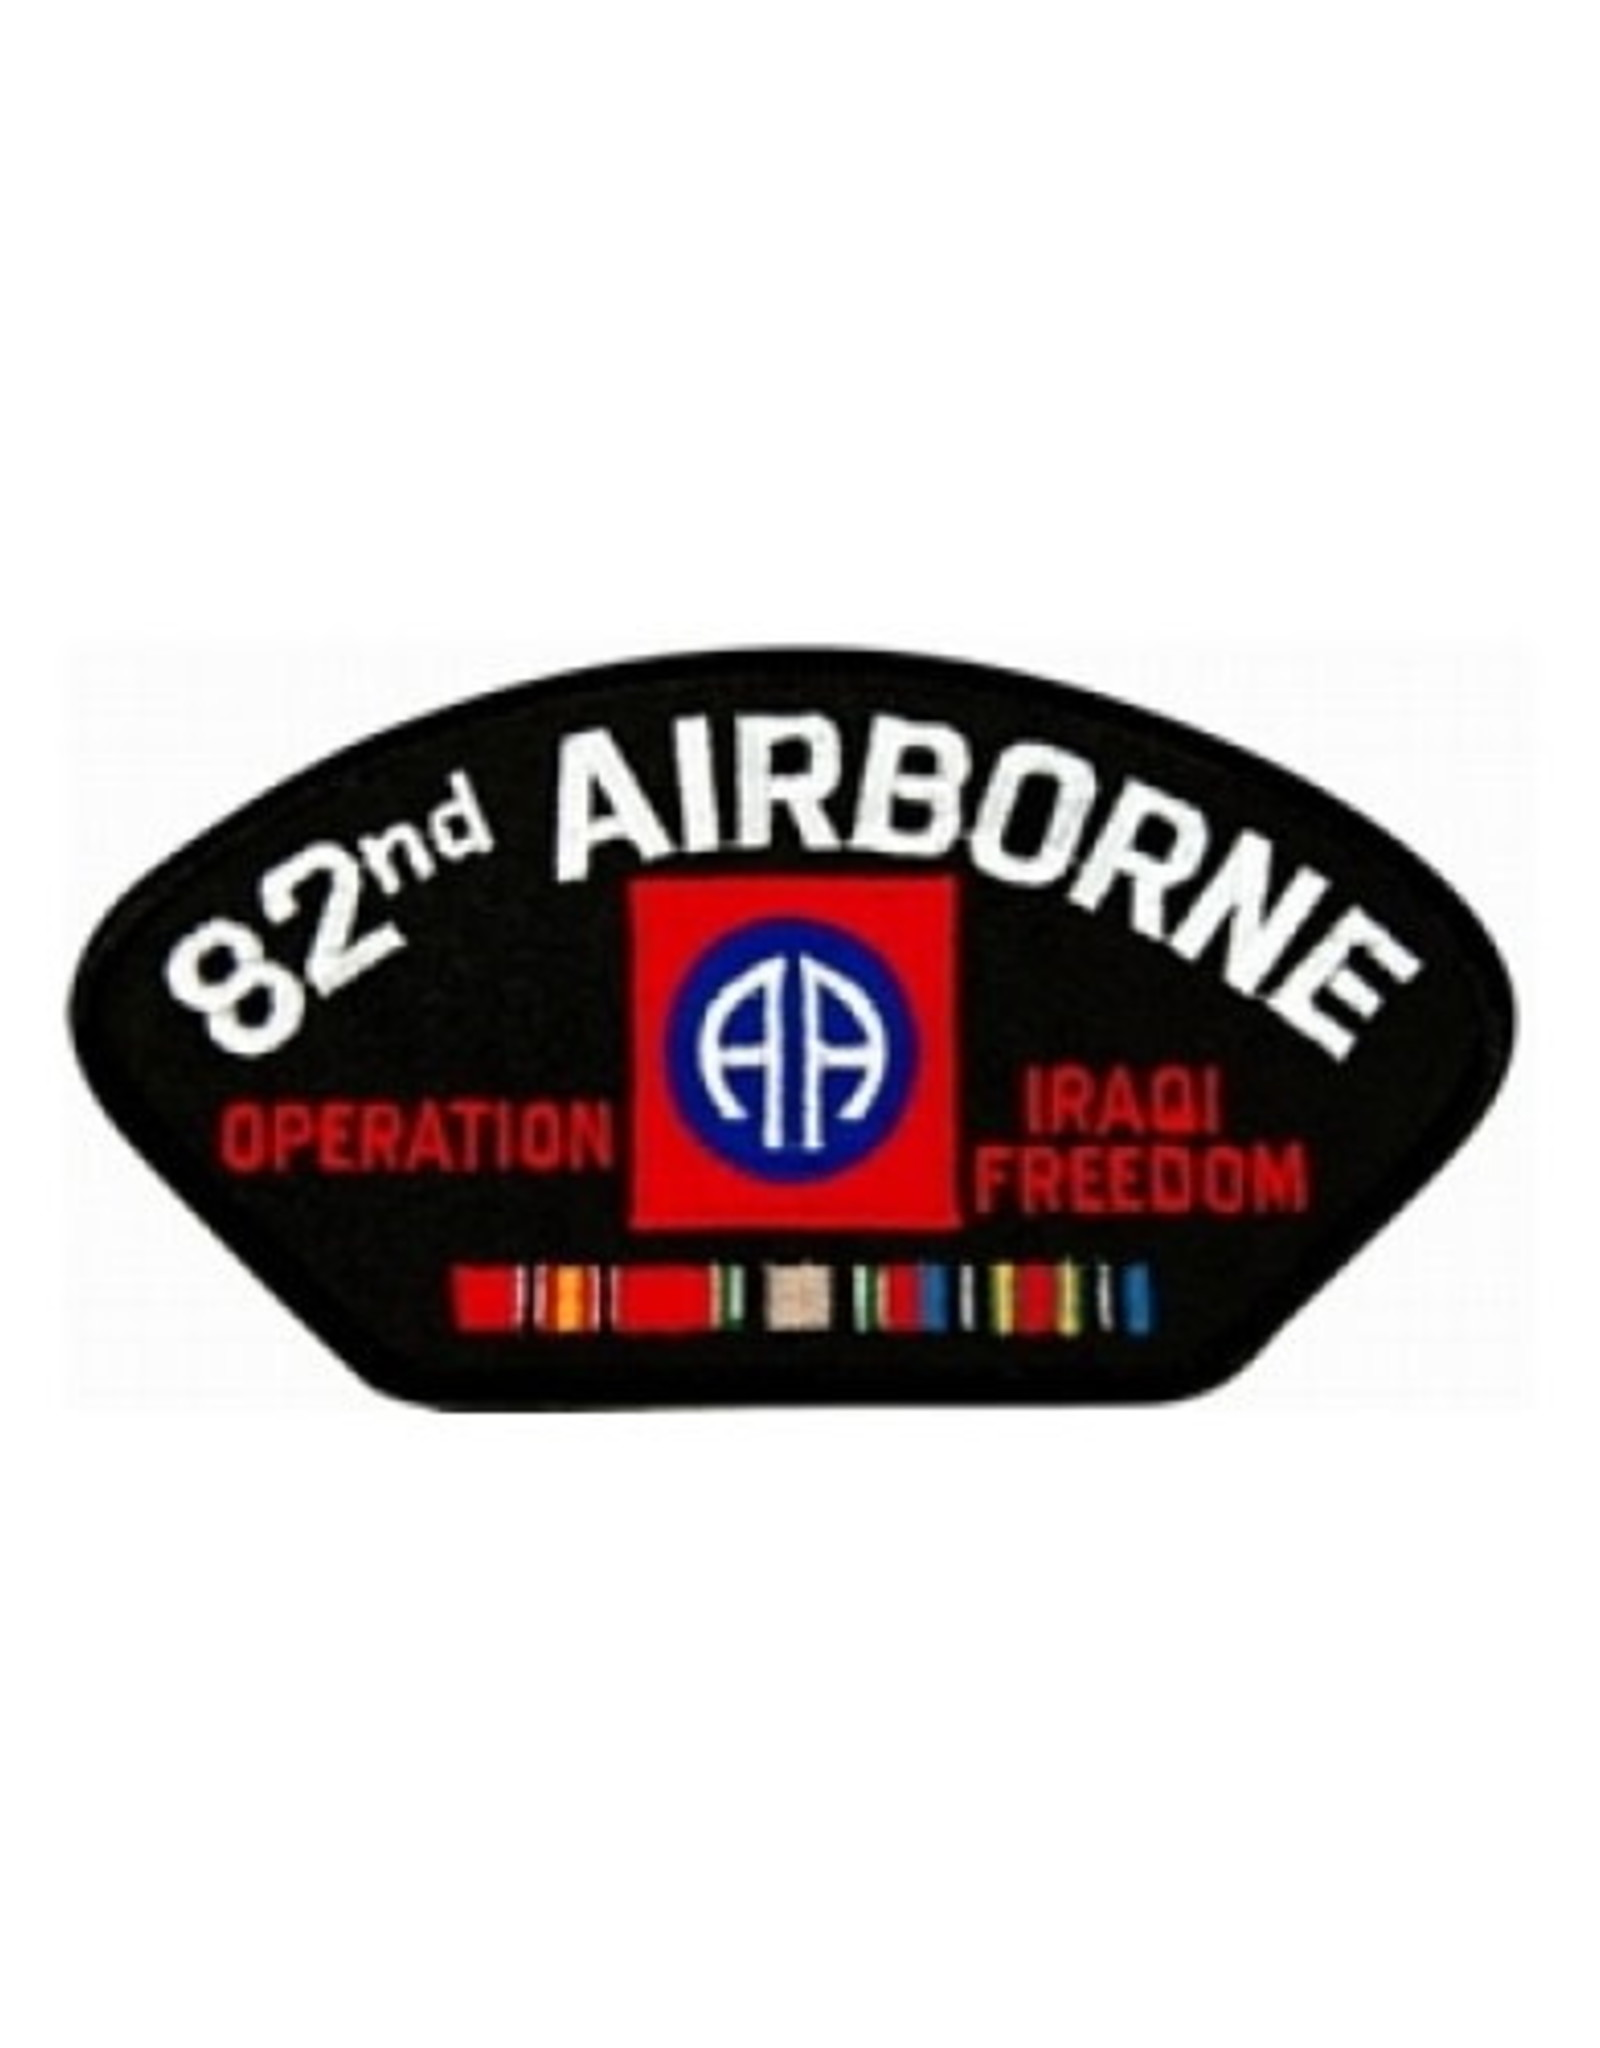 """MidMil Embroidered Army 82nd Airborne Operation Iraqi Freedom Patch with Emblem and Ribbons 5.2"""" wide x 2.7"""" high Black"""